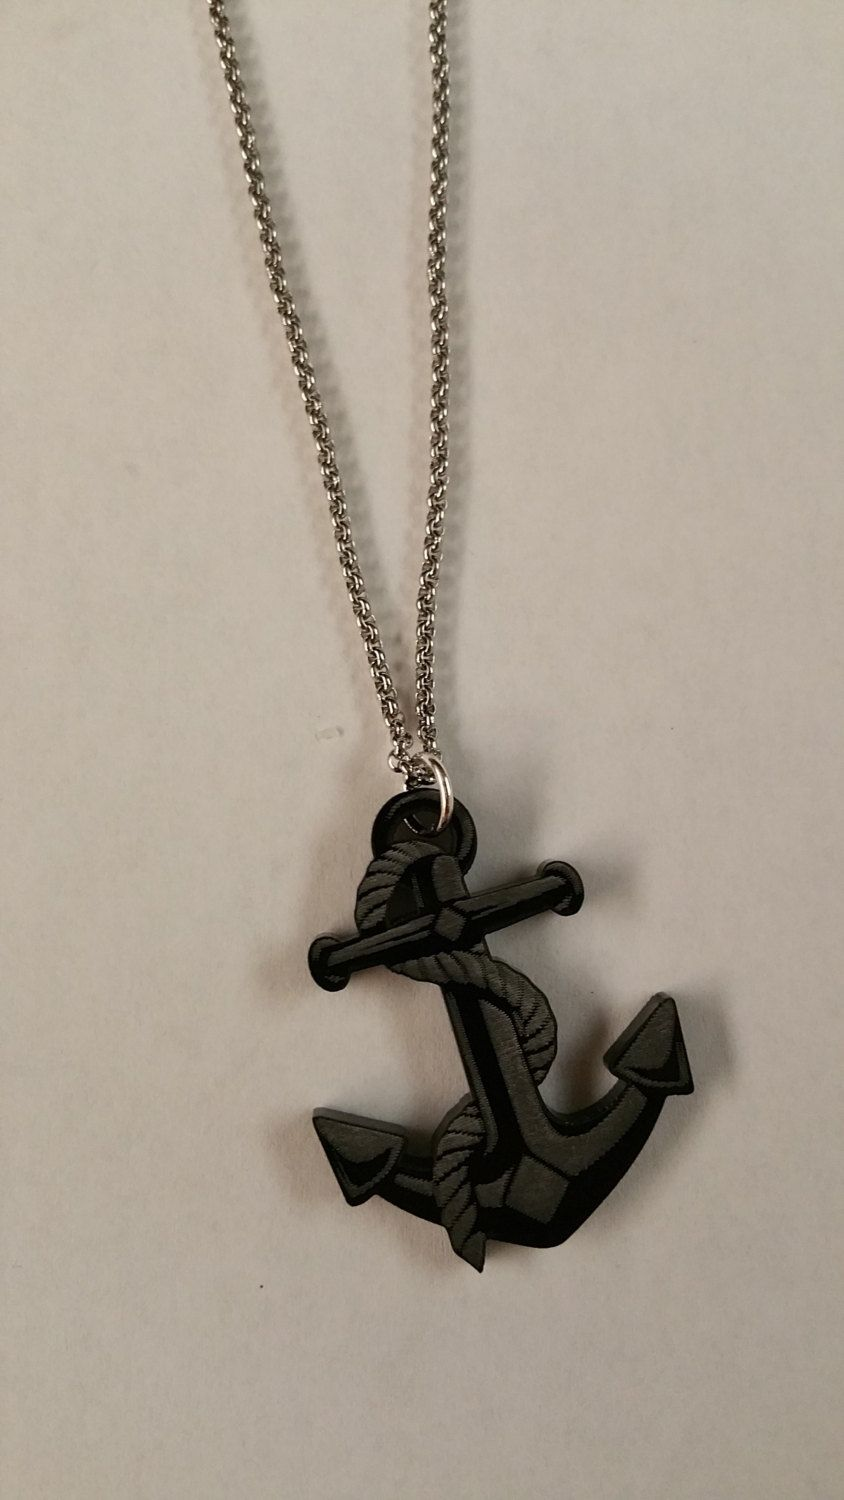 Custom Laser Cut  / Etched Acrylic Anchor Shaped Pendant & Stainless Steel Necklace Made In USA by 979Laser on Etsy